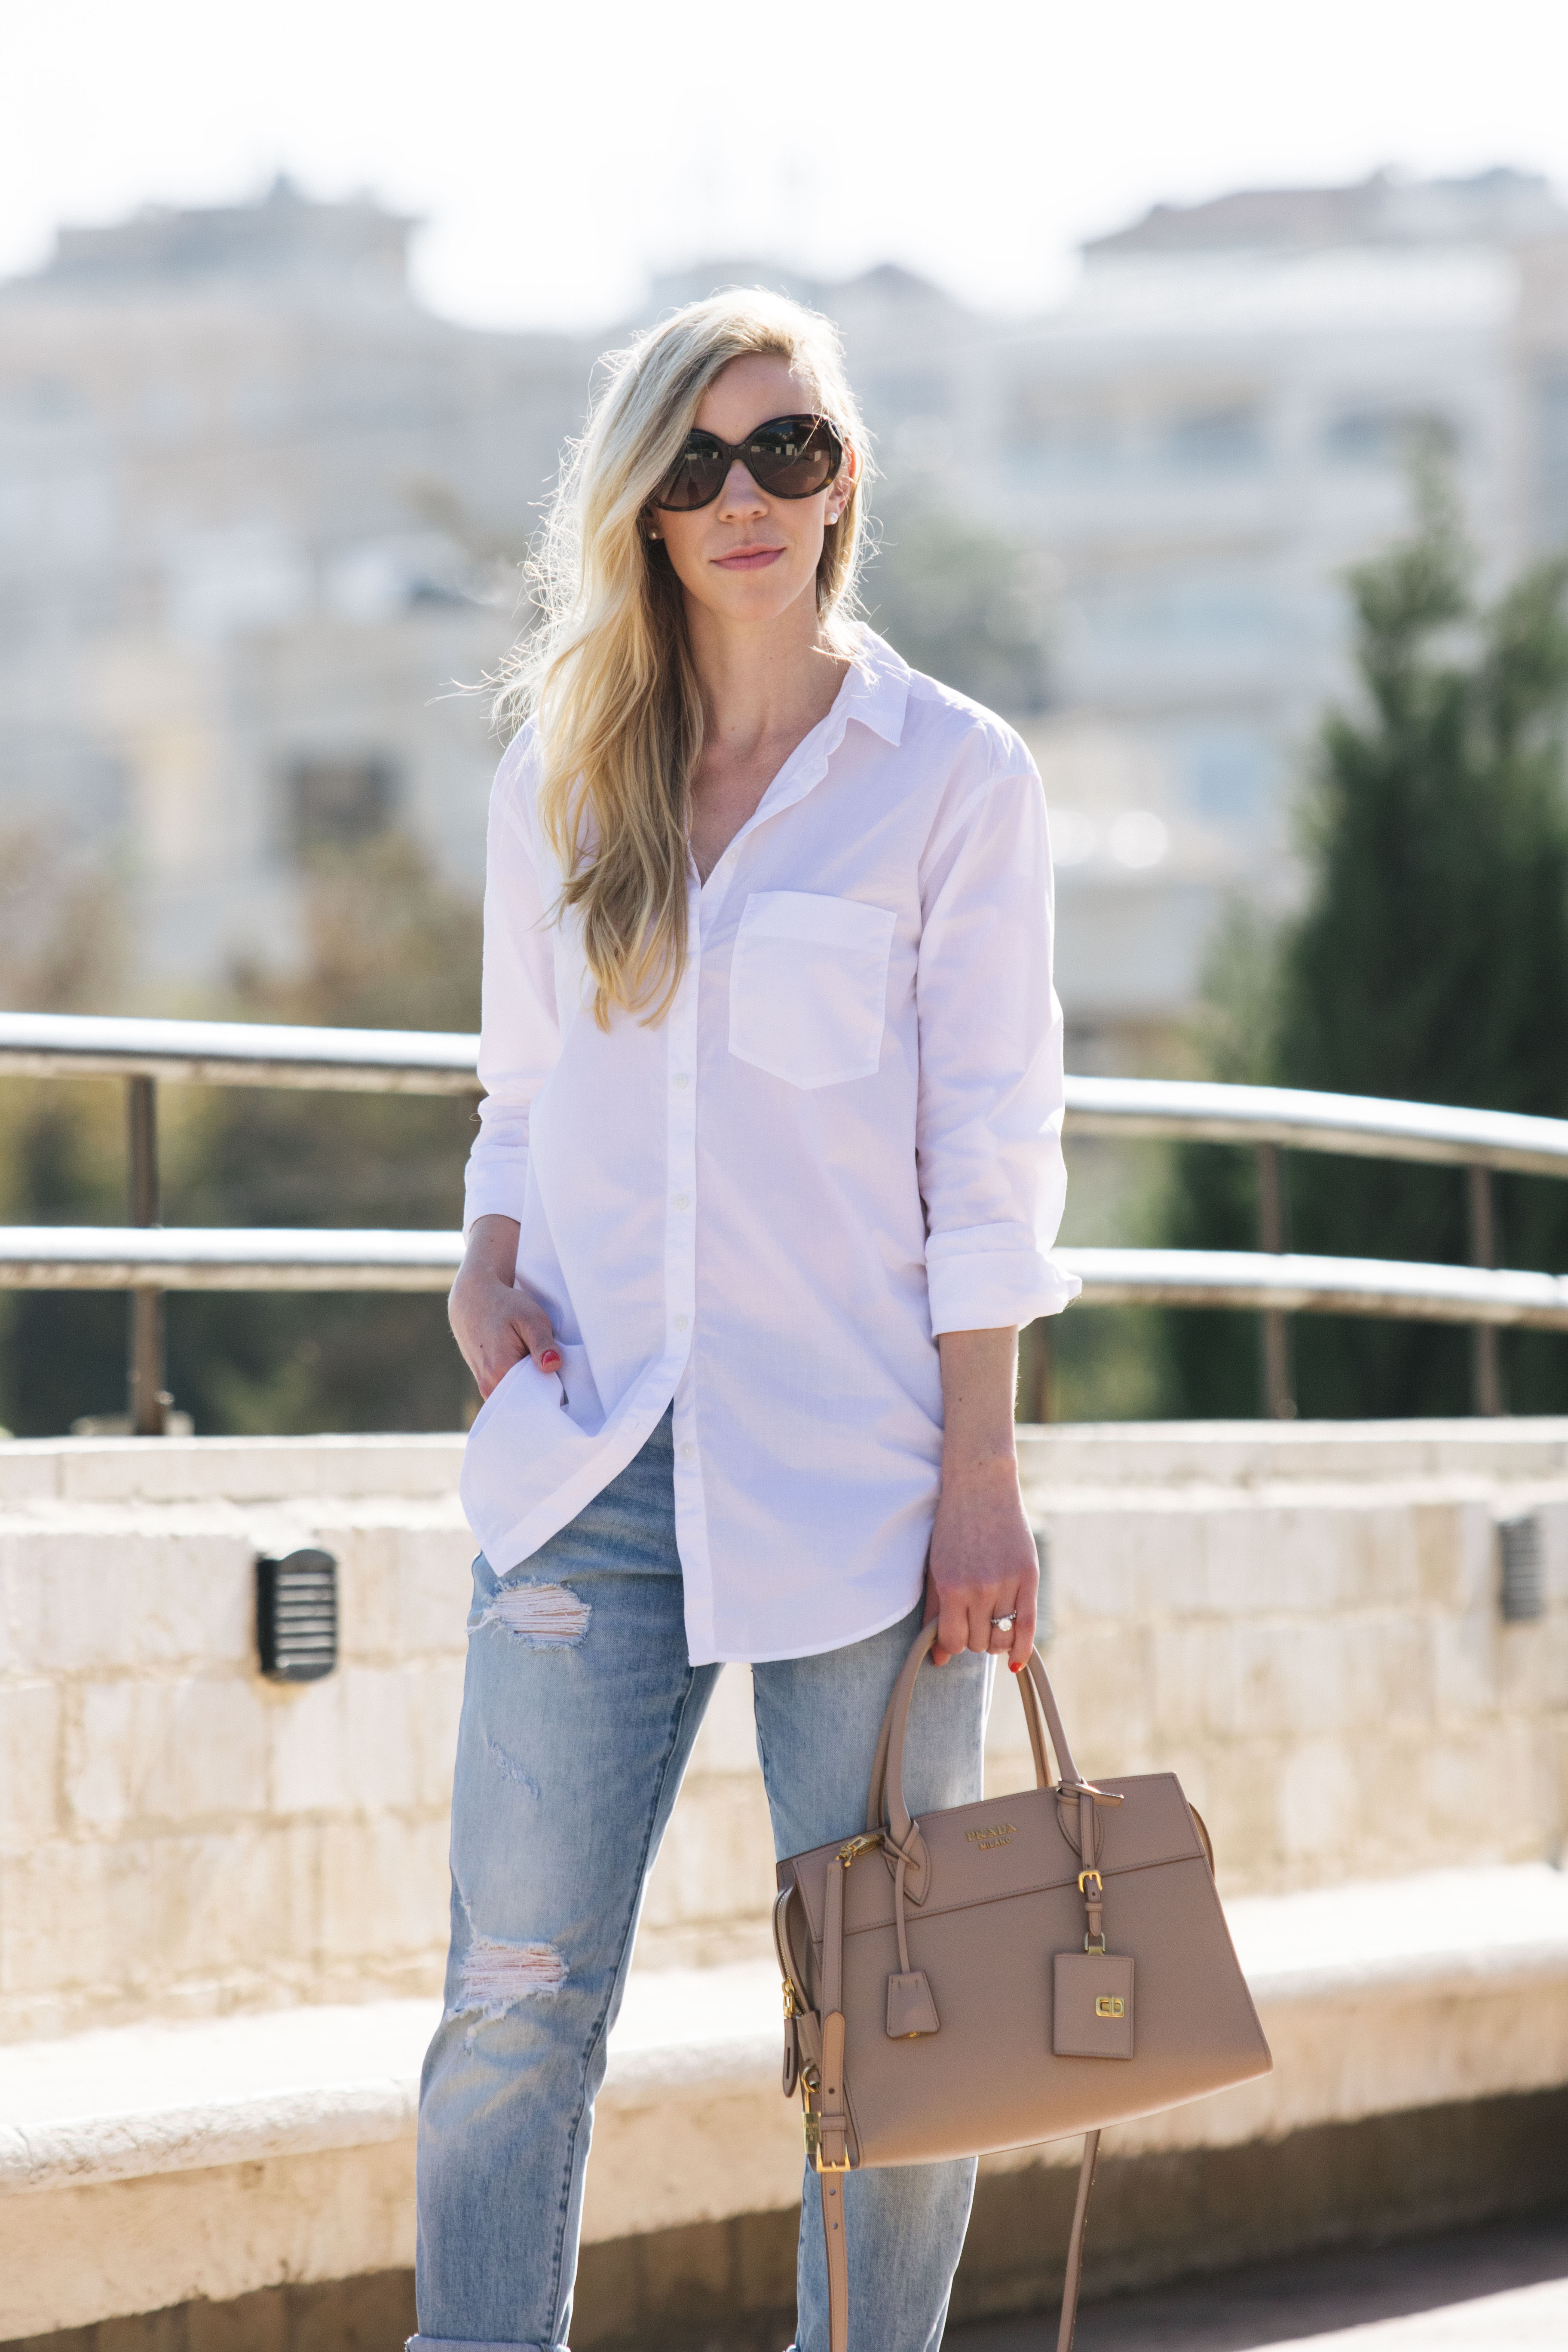 Dress up your boyfriend - Because I Wear Them So Often I M Always Looking For New Ways To Style My Button Downs Here Are A Few Easy Tips To Dress Them Up So It S Never Boring